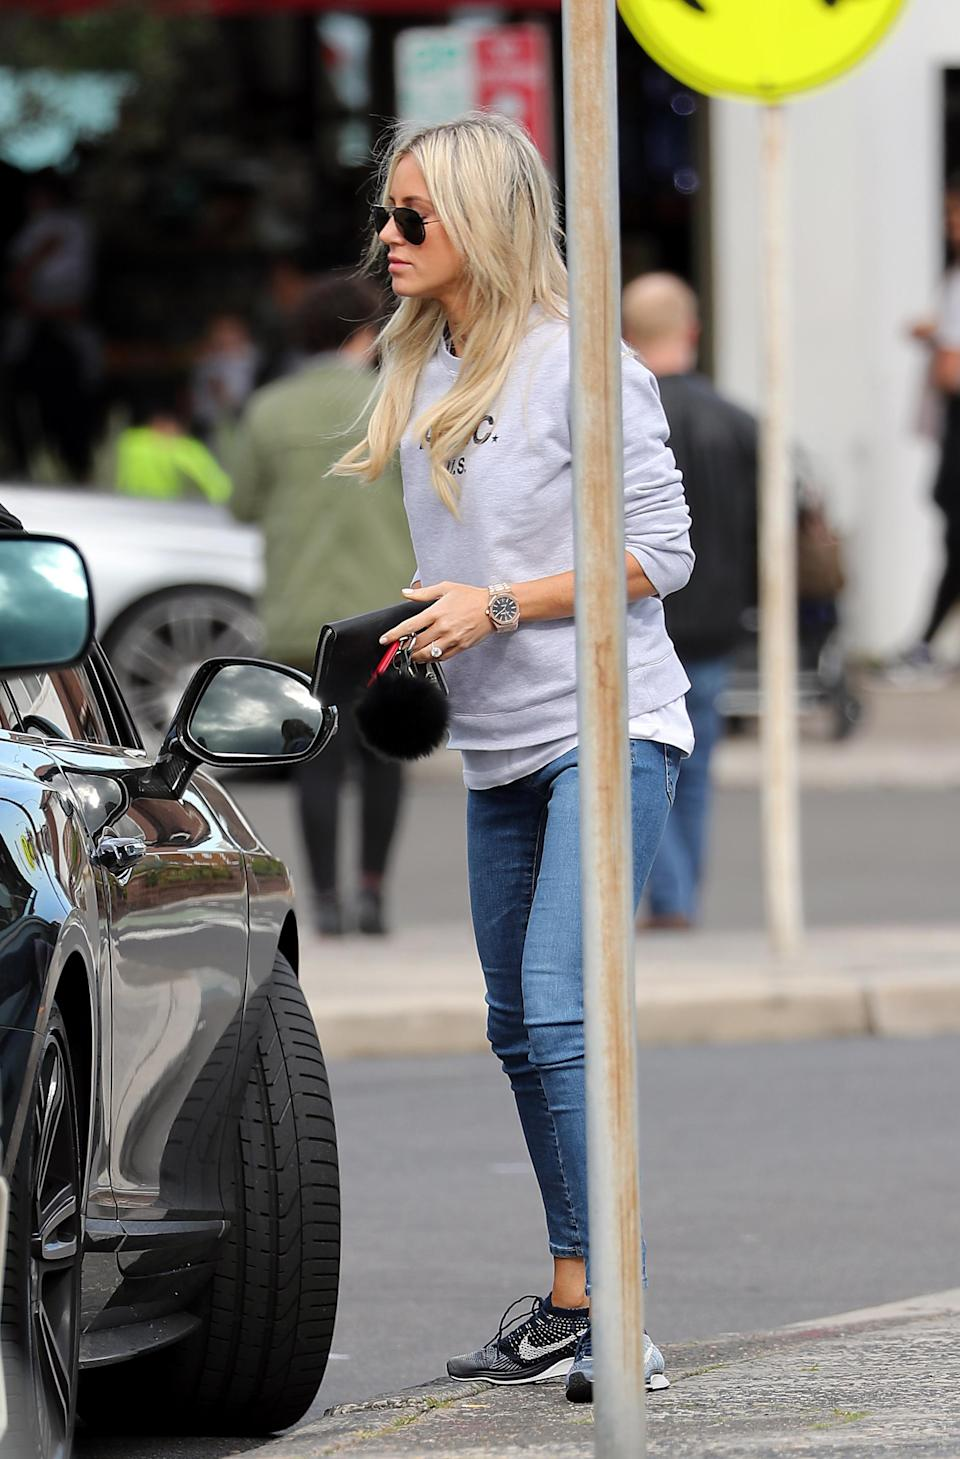 The blonde bombshell was dressed casually in a grey sweatshirt and jeans.